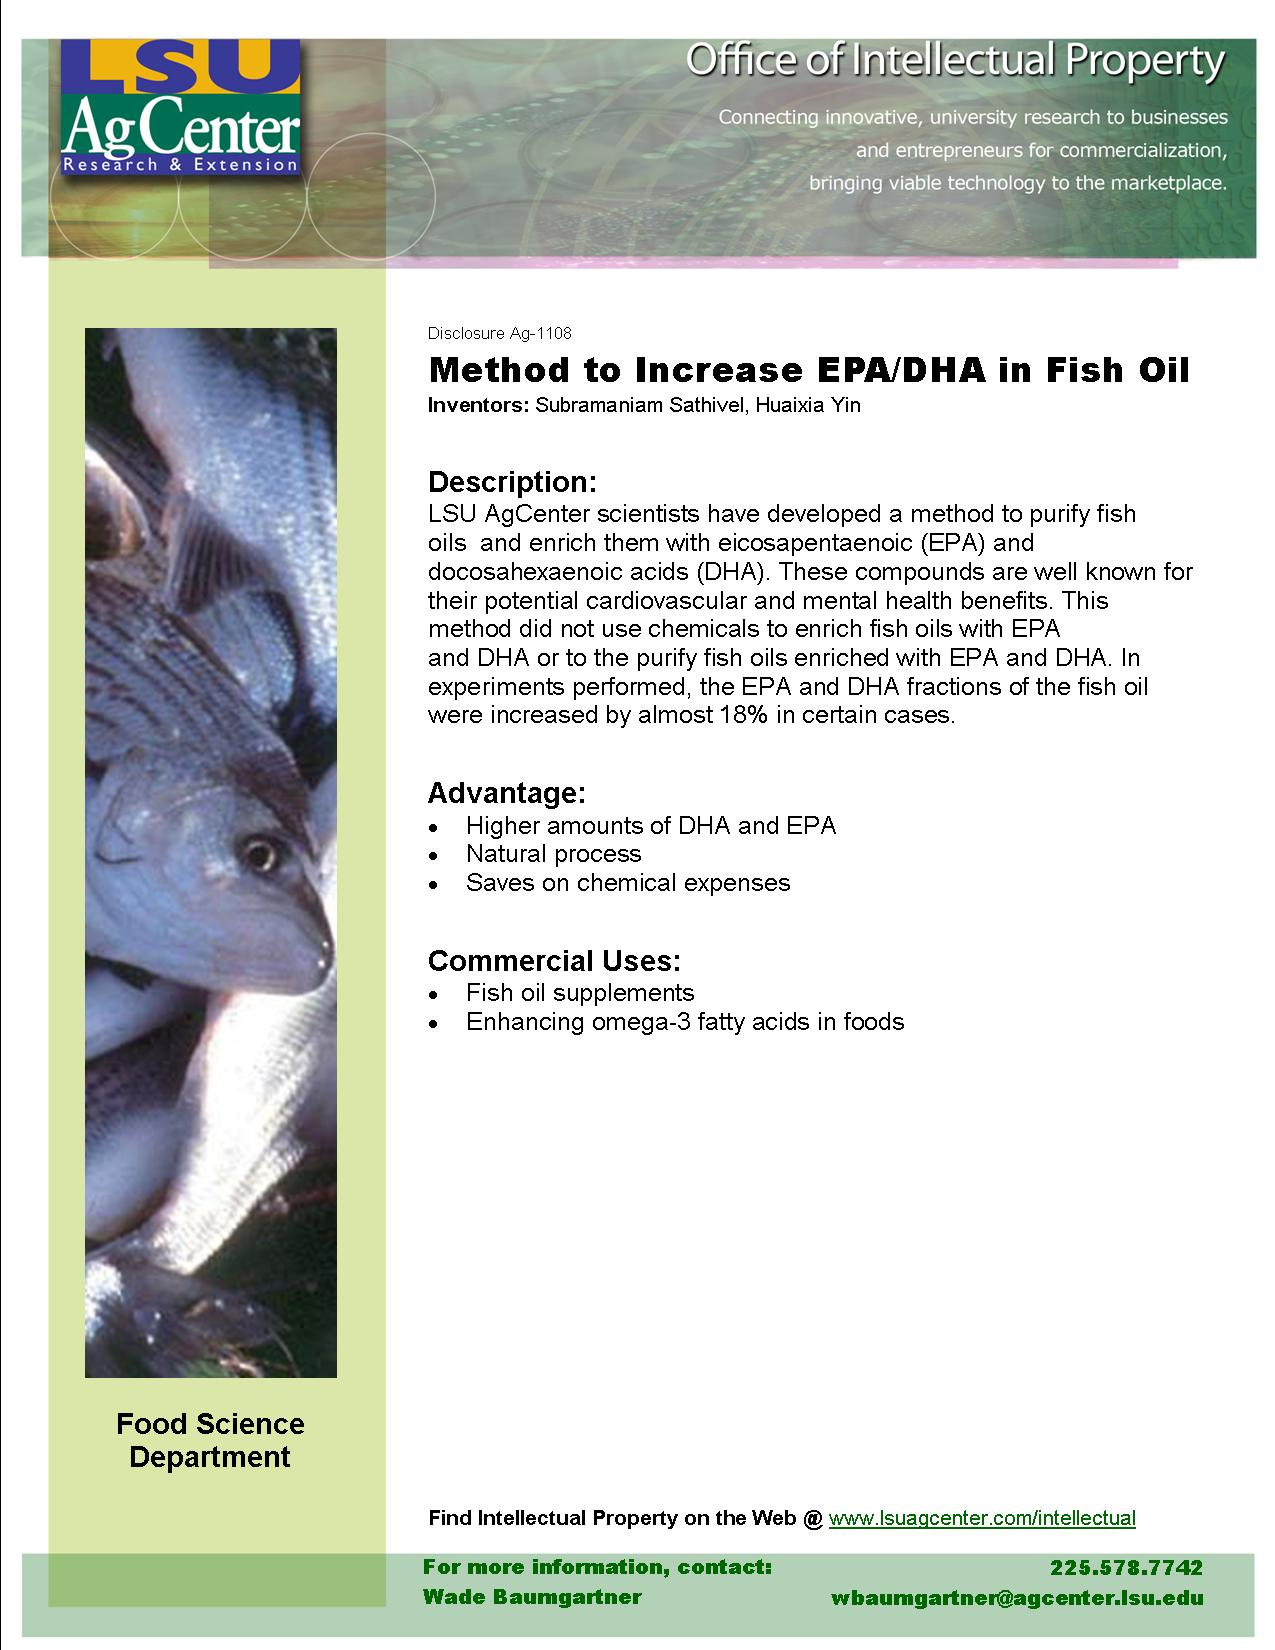 Method to Increase EPA/DHA in Fish Oil